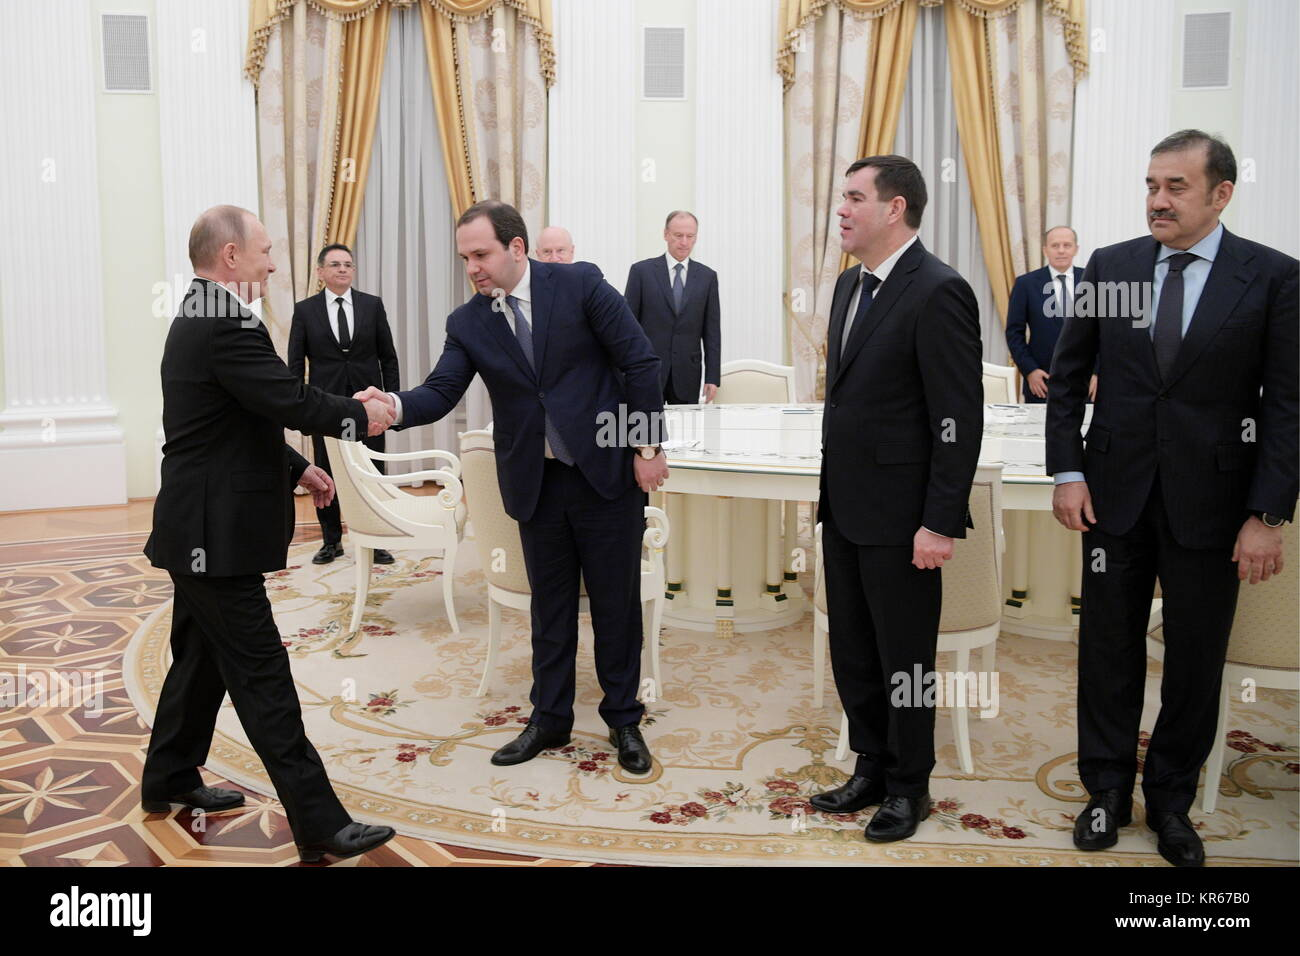 MOSCOW, RUSSIA - DECEMBER 19, 2017: Russia's president Vladimir Putin shakes hands with the director of the - Stock Image